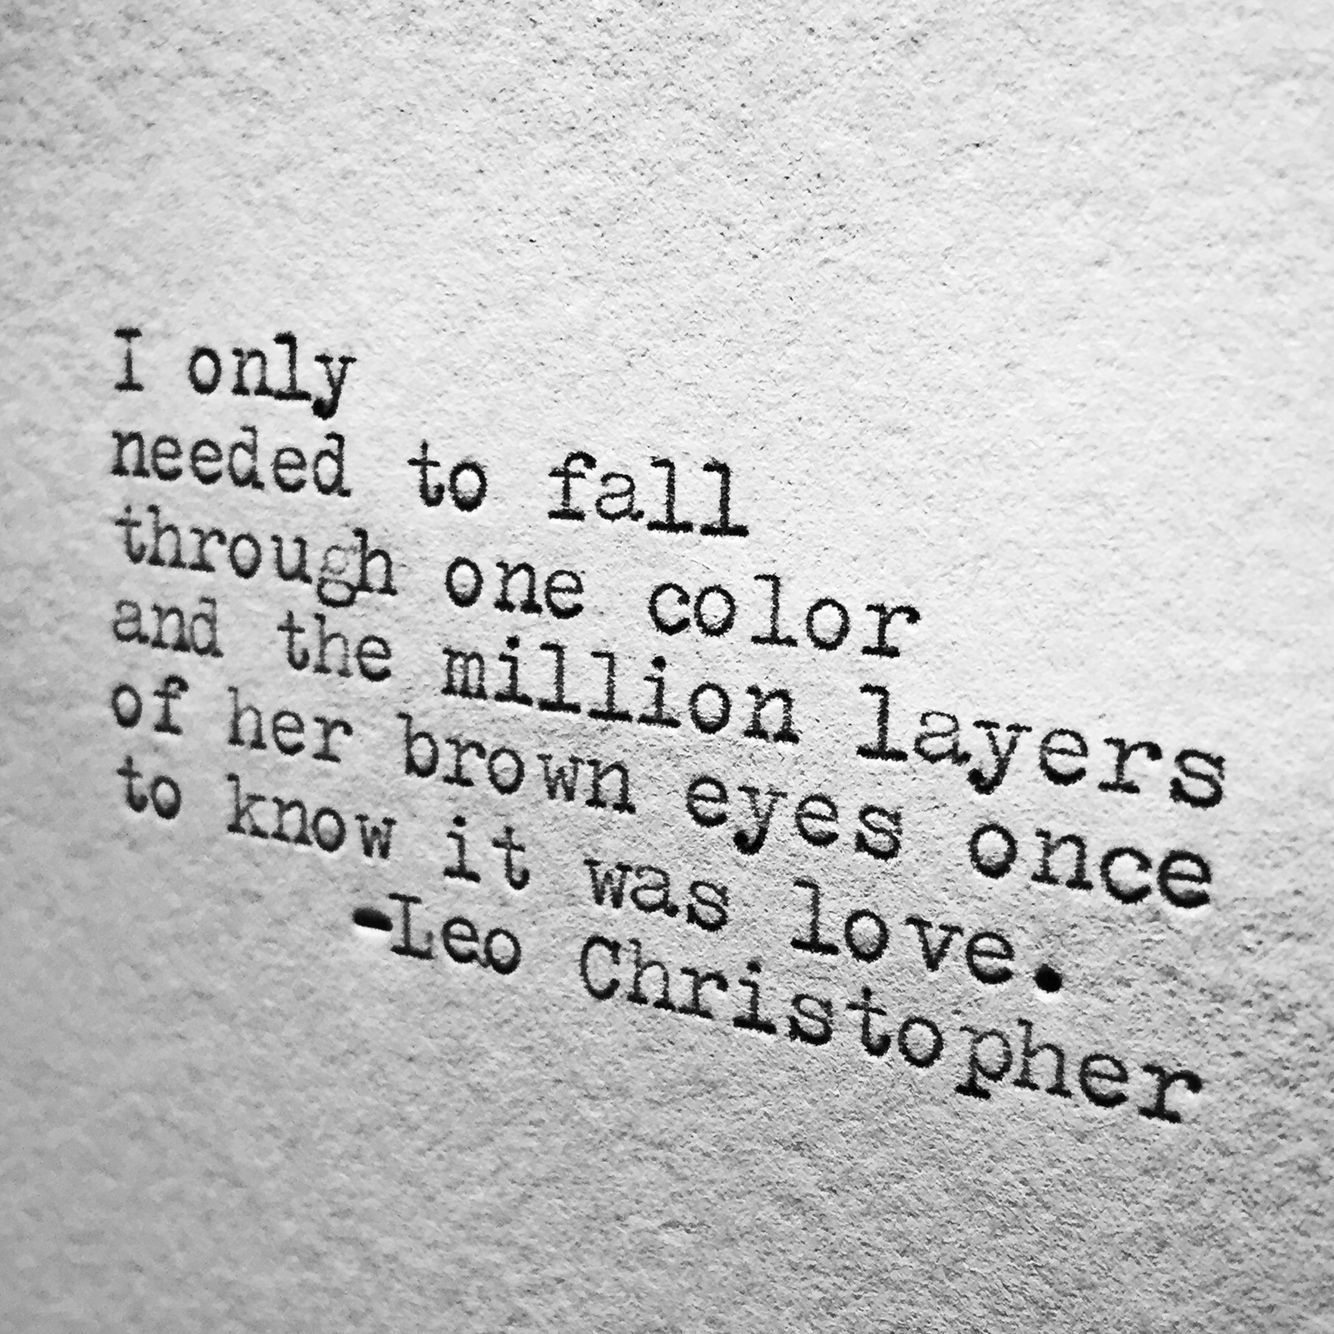 She Has Beautiful Eyes Quotes: Leo Christopher • Million Layers